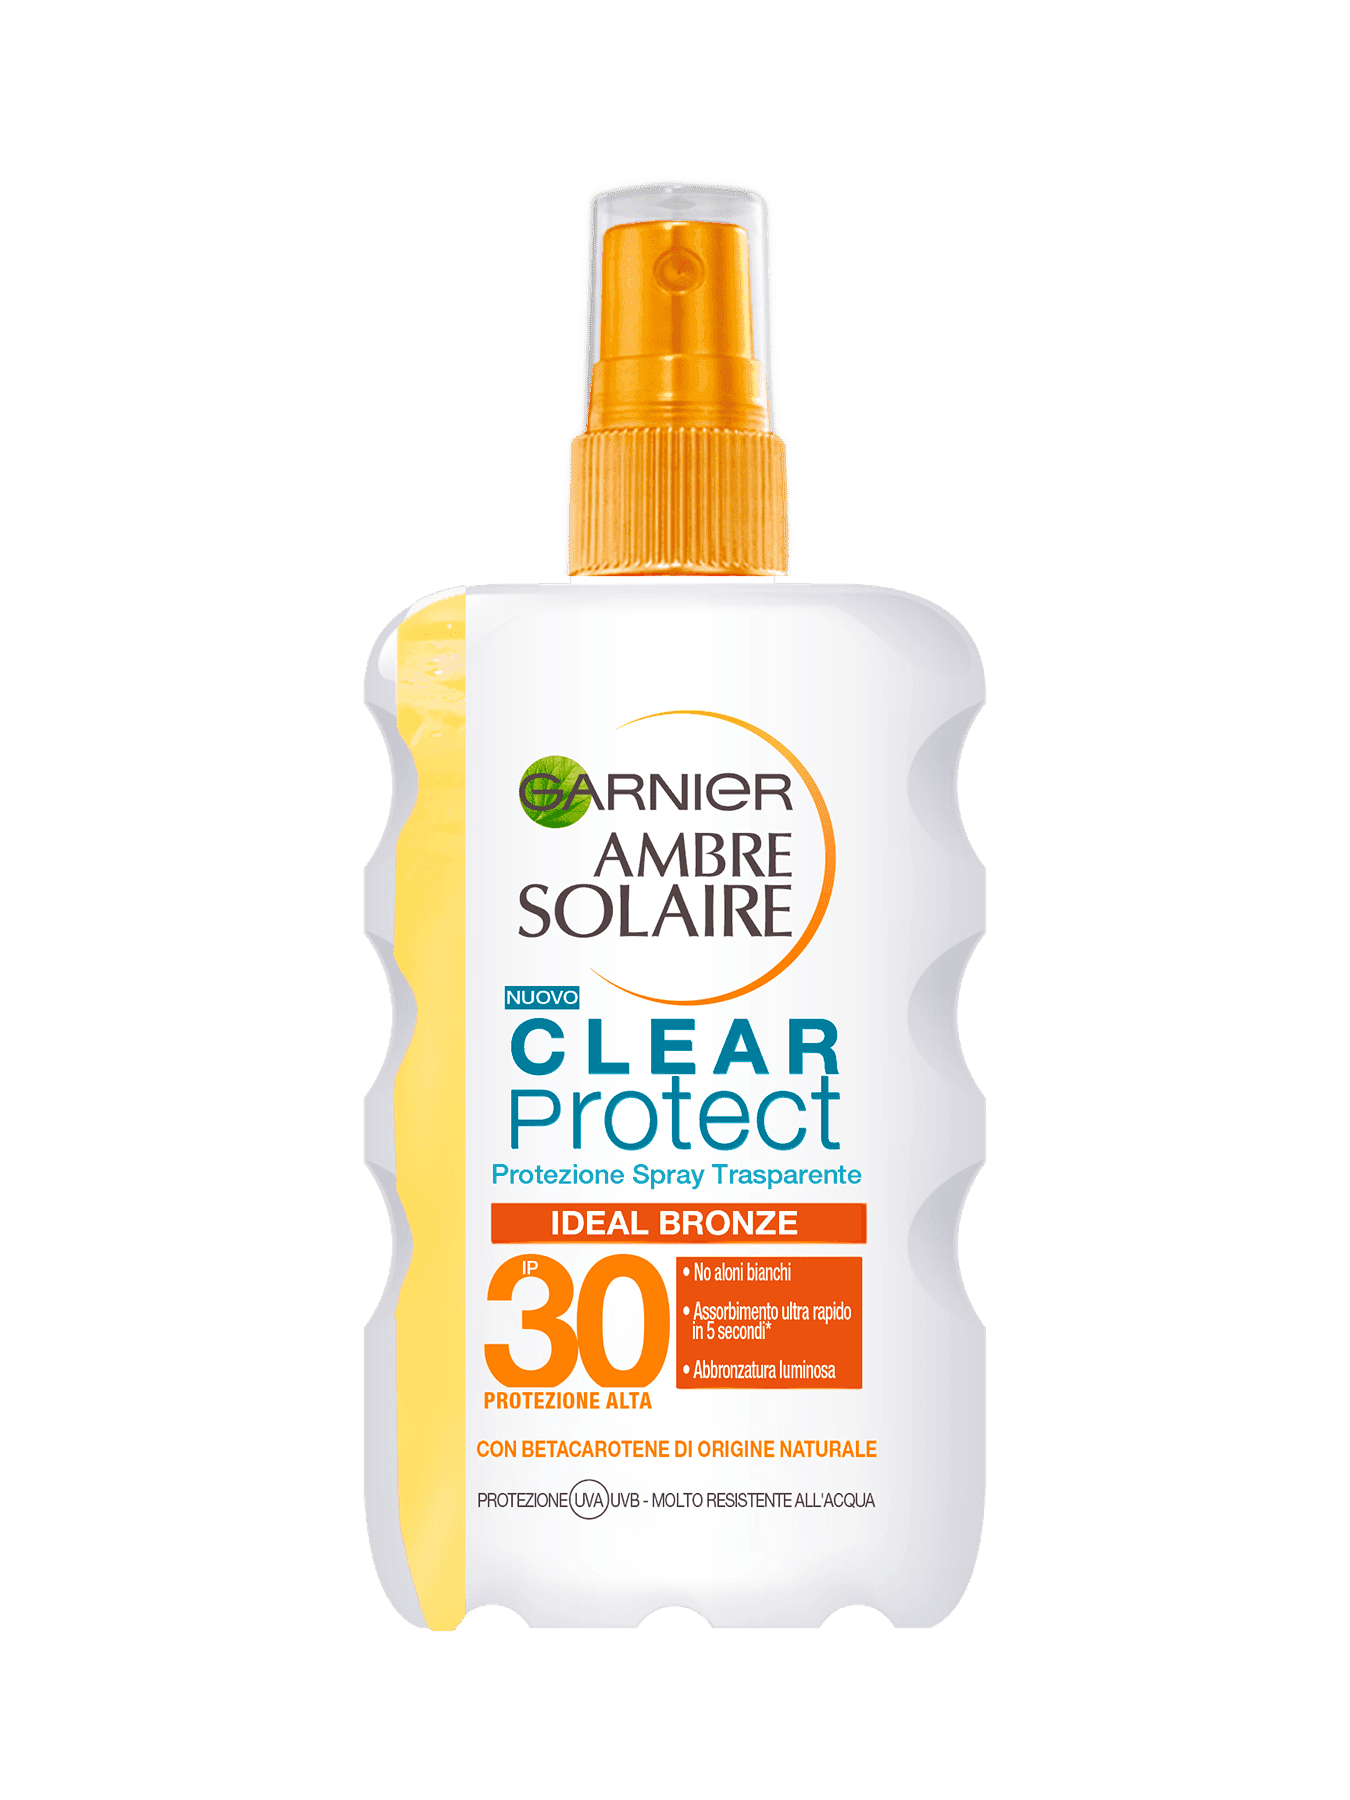 ambre solaire clear protect 30